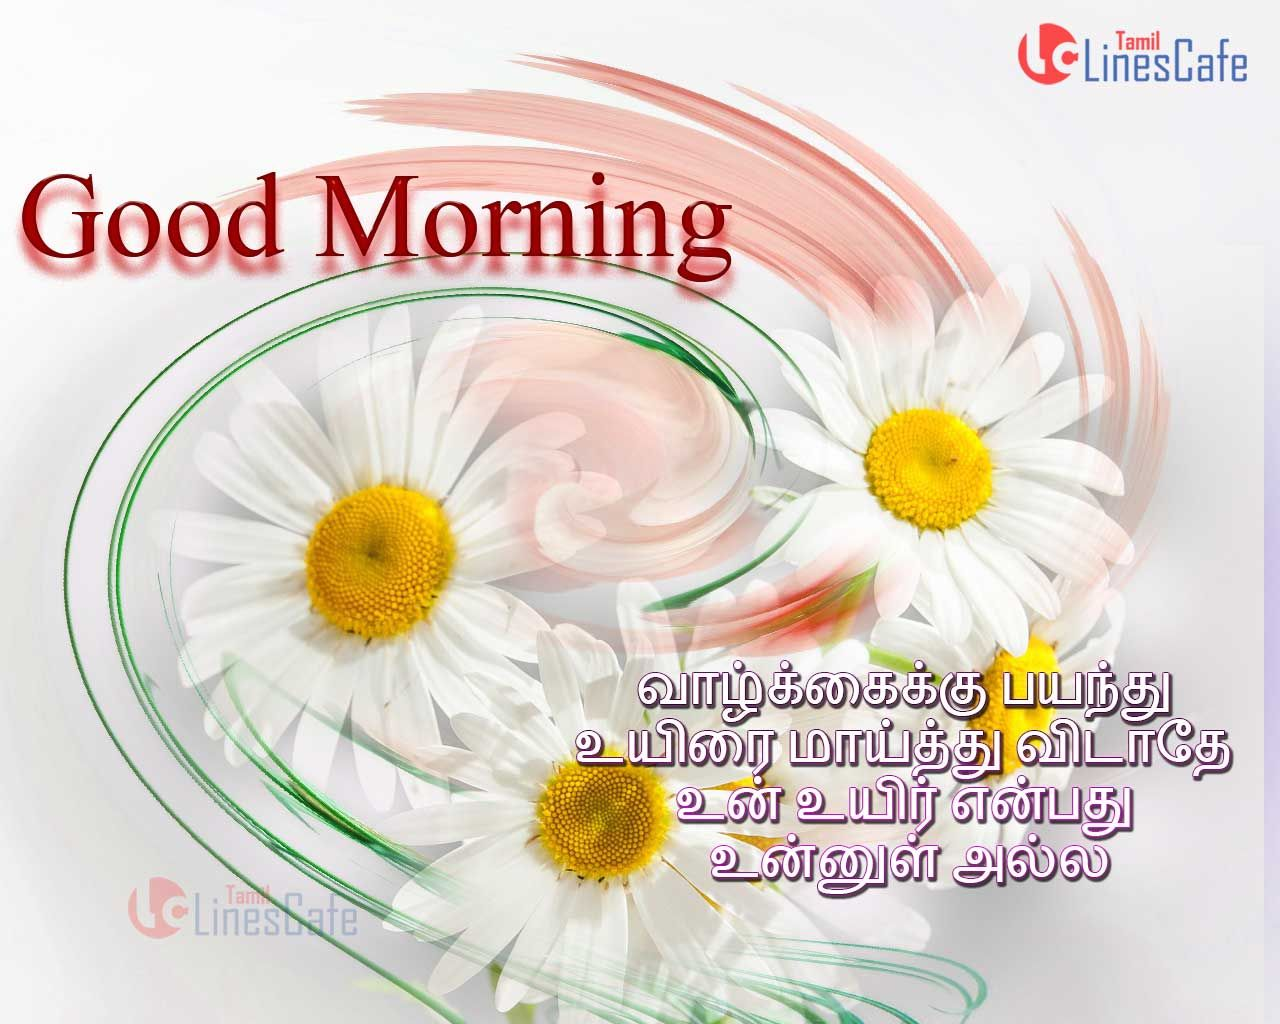 Good Morning Everyone Poem : Tamil good morning messages and poems for lovers